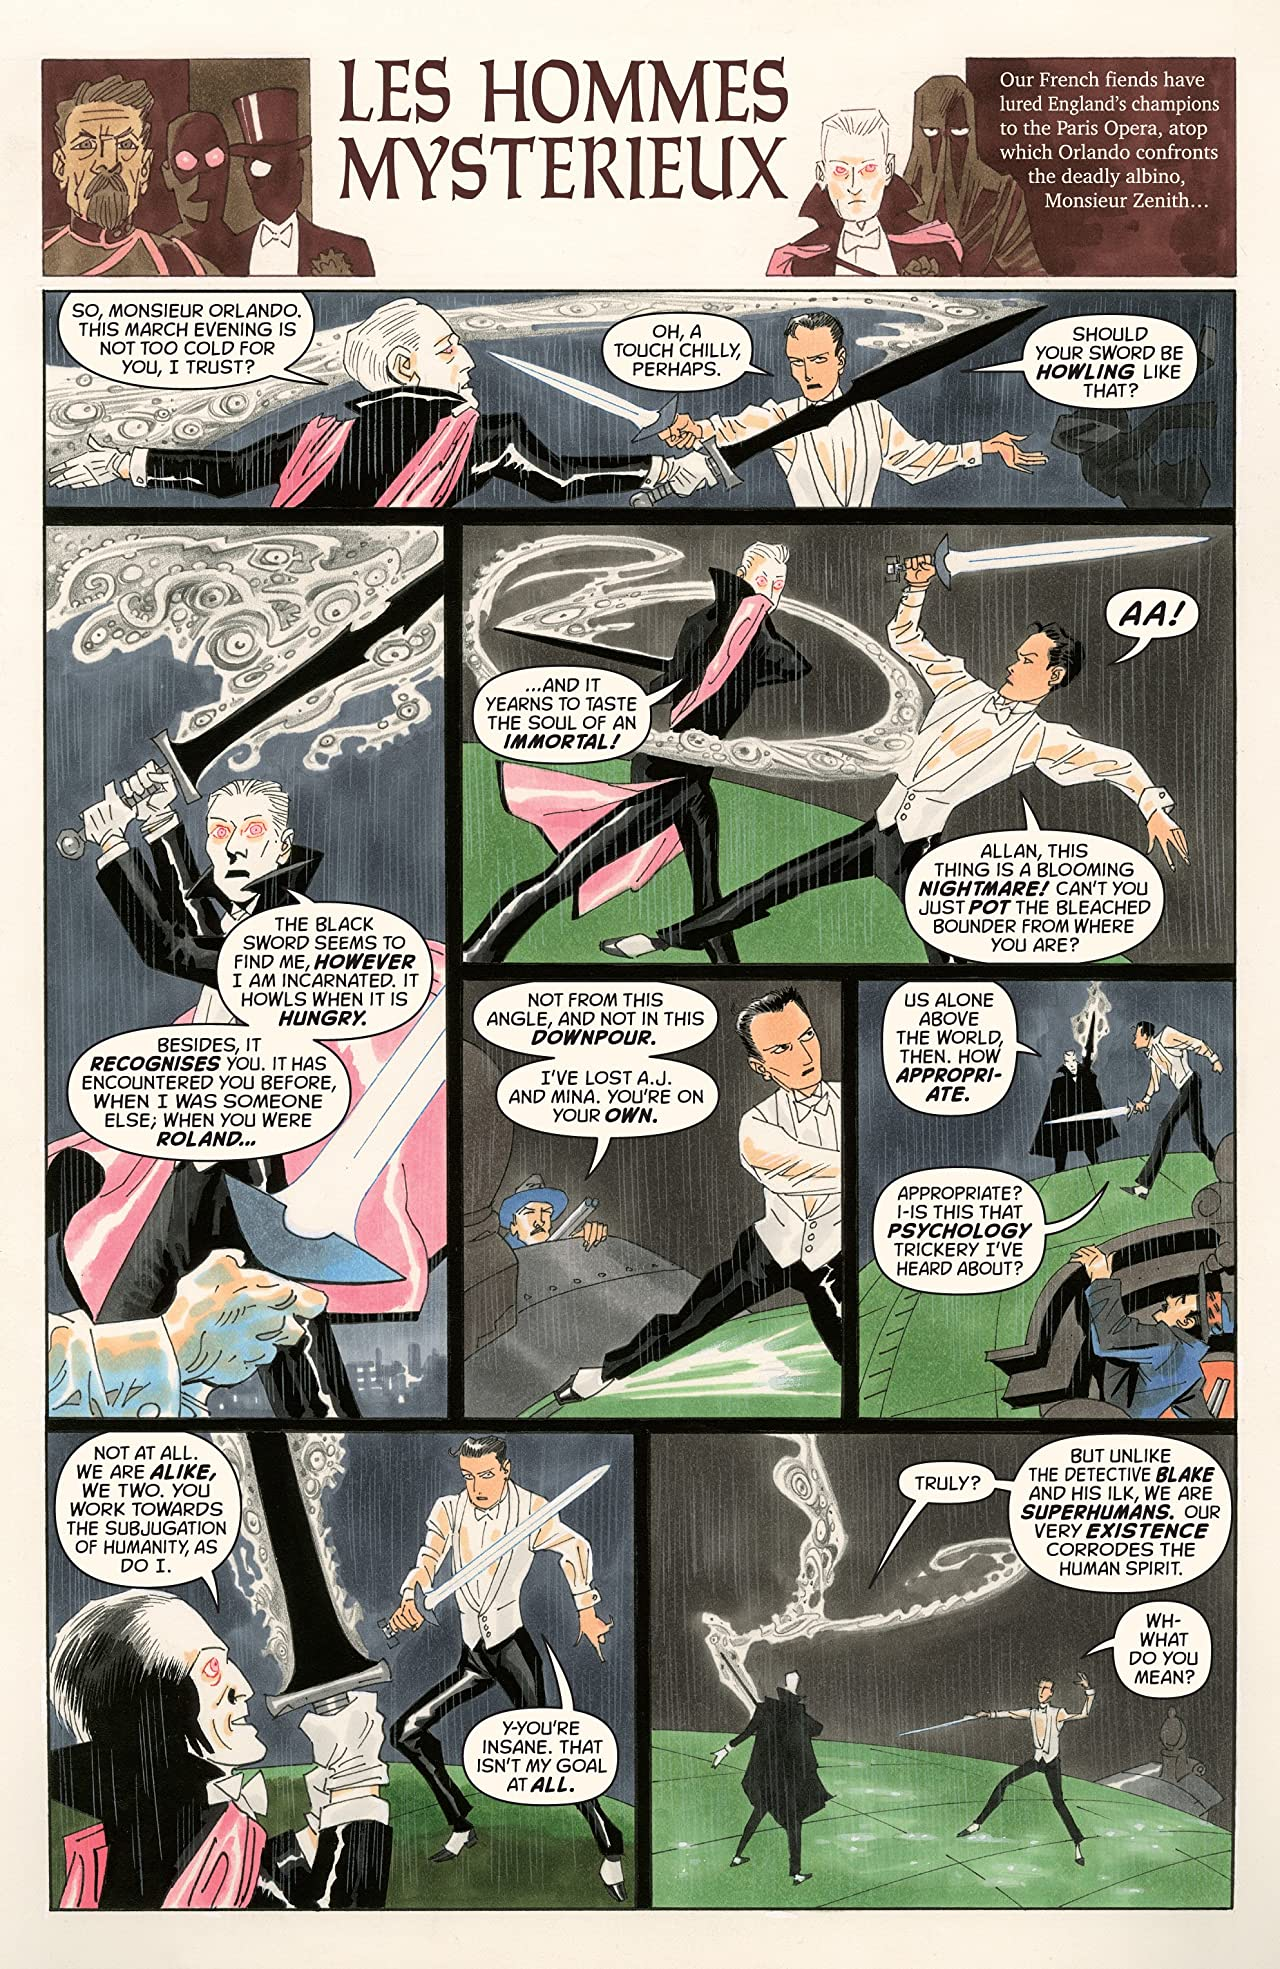 The League of Extraordinary Gentlemen: The Tempest #4 (of 6)